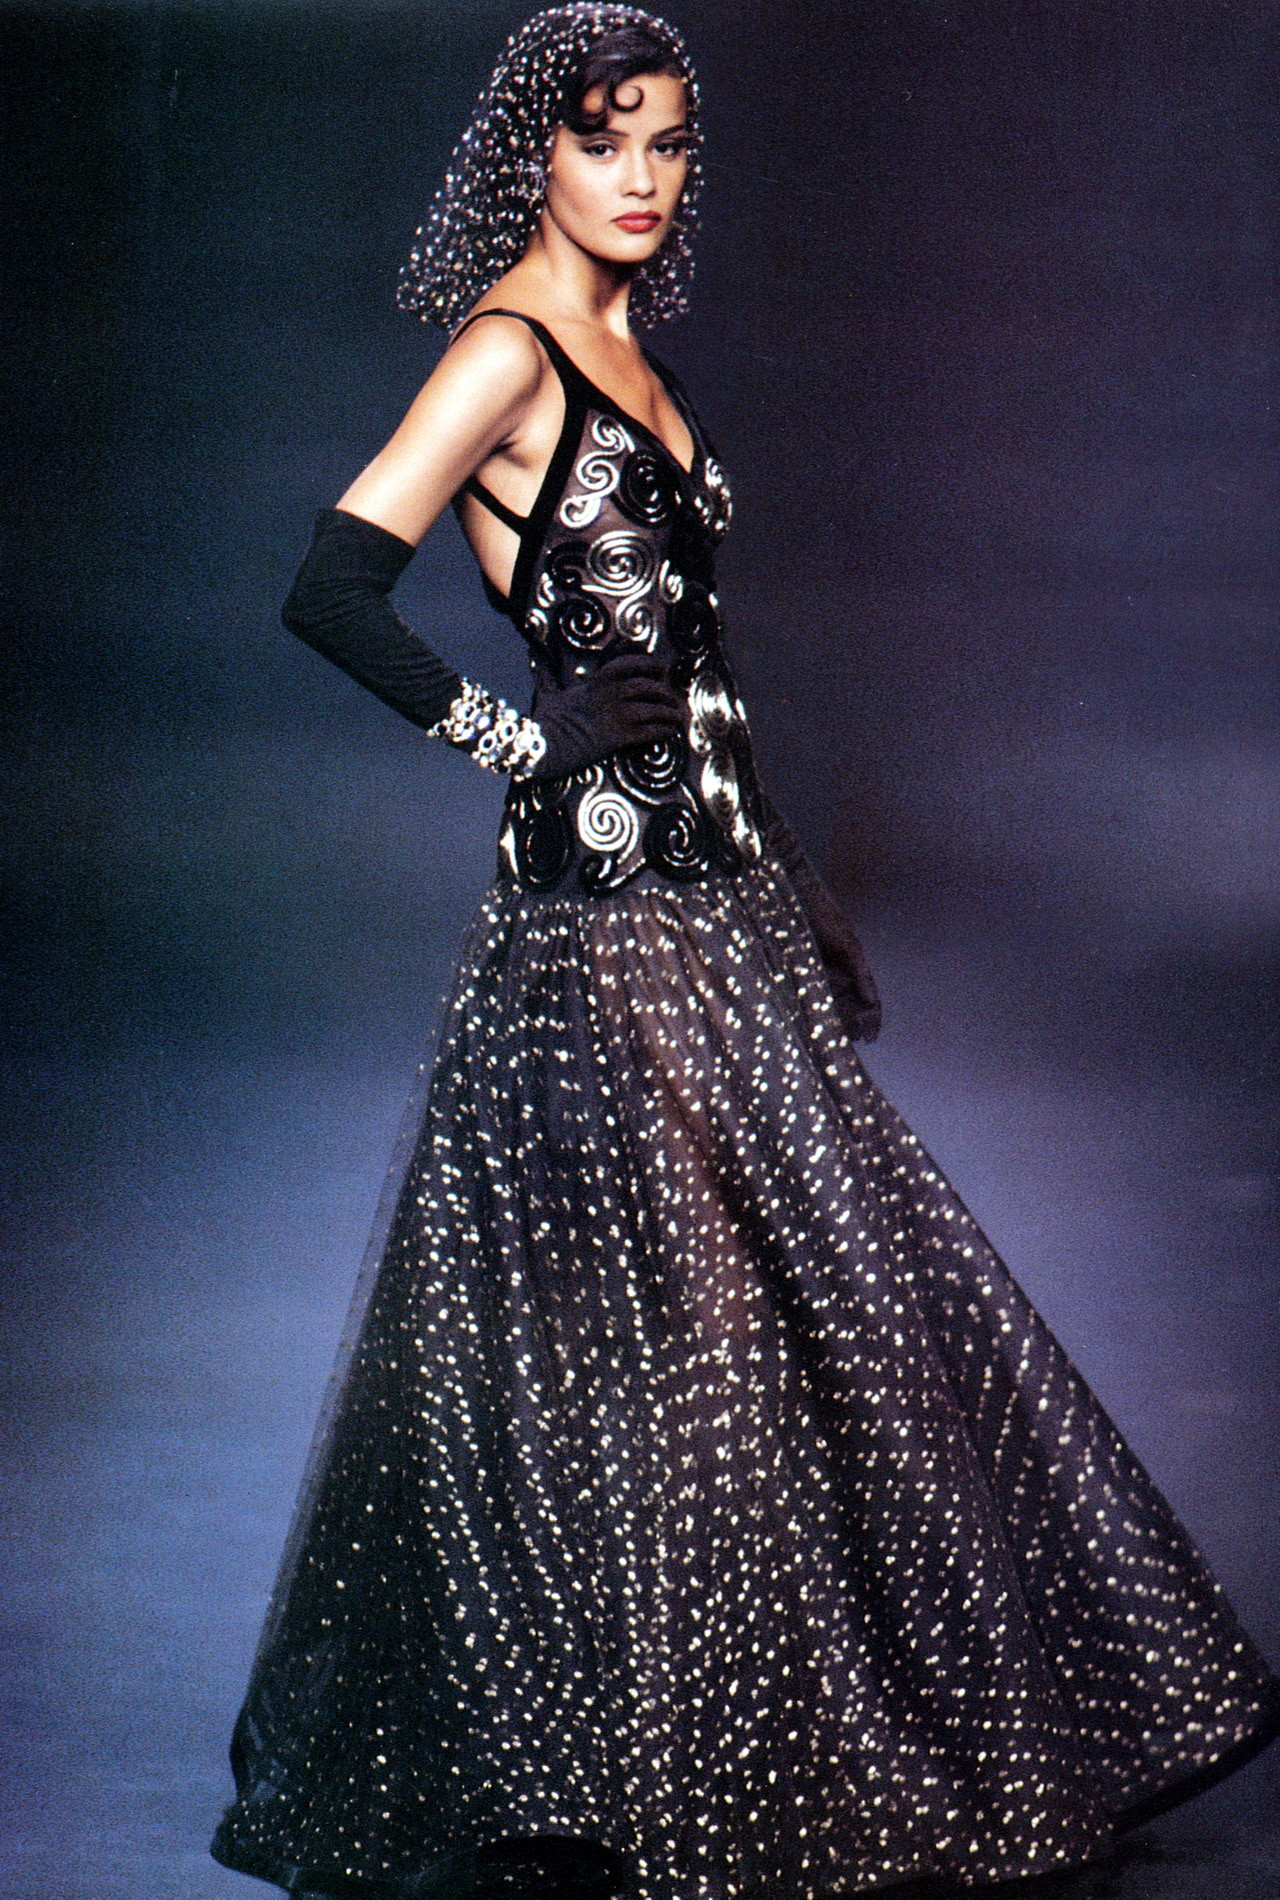 Nadege for Valentino, f/w 1992/93